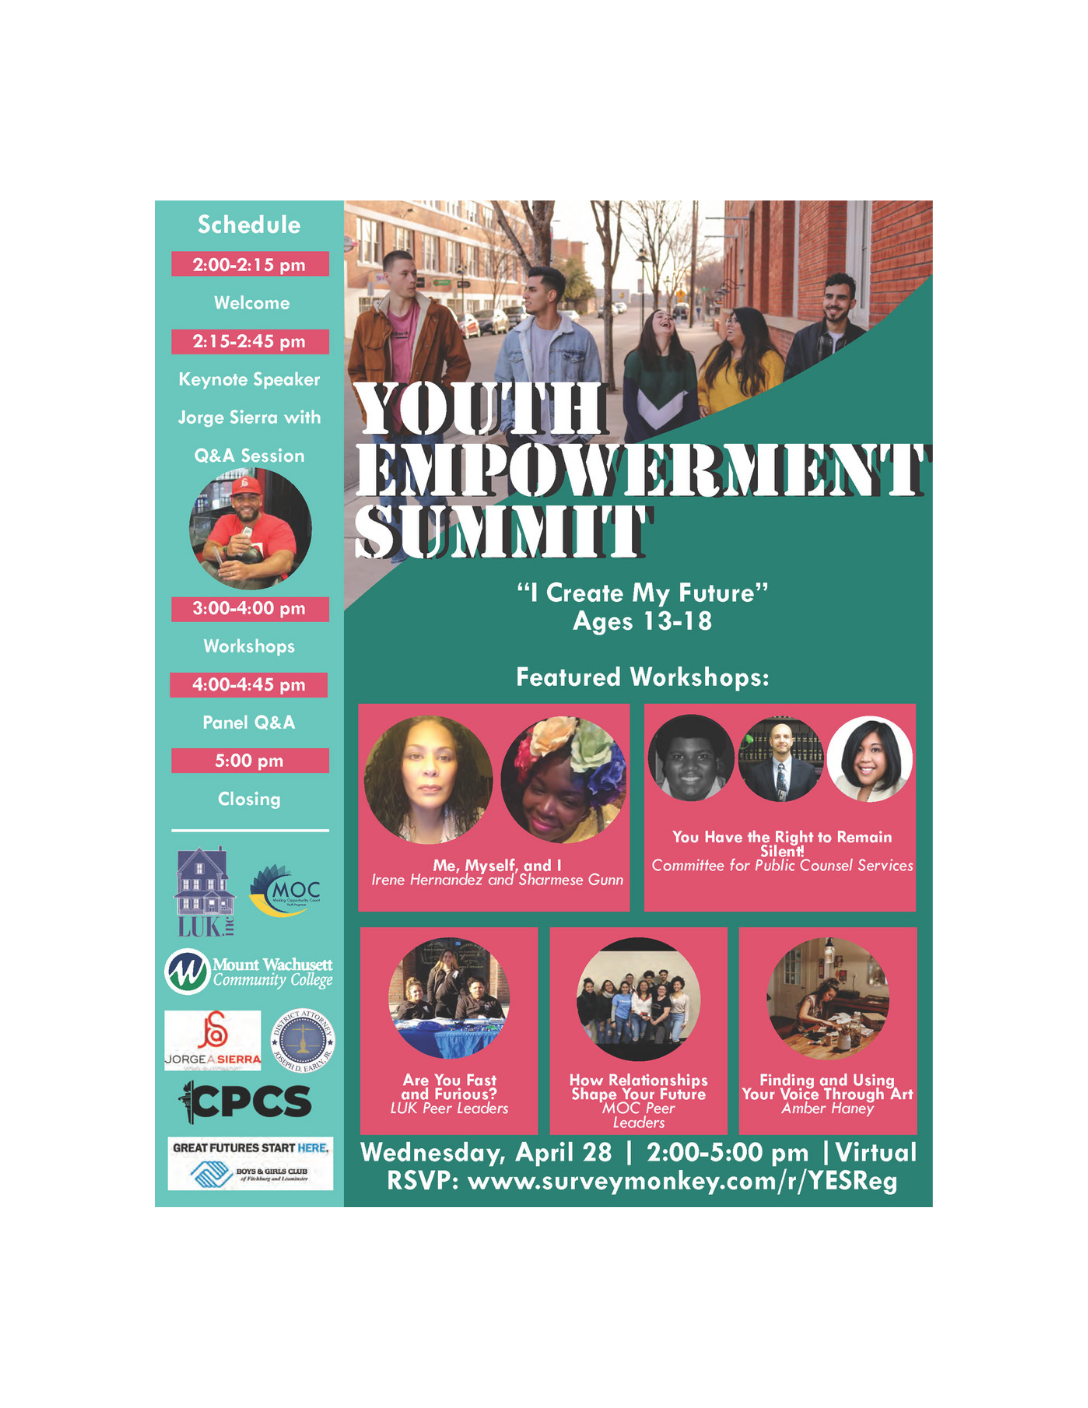 """Youth Empowerment Summit: """"I Create My Future"""" (Ages 13-18) - Virtual Event on April 28, 2021!"""